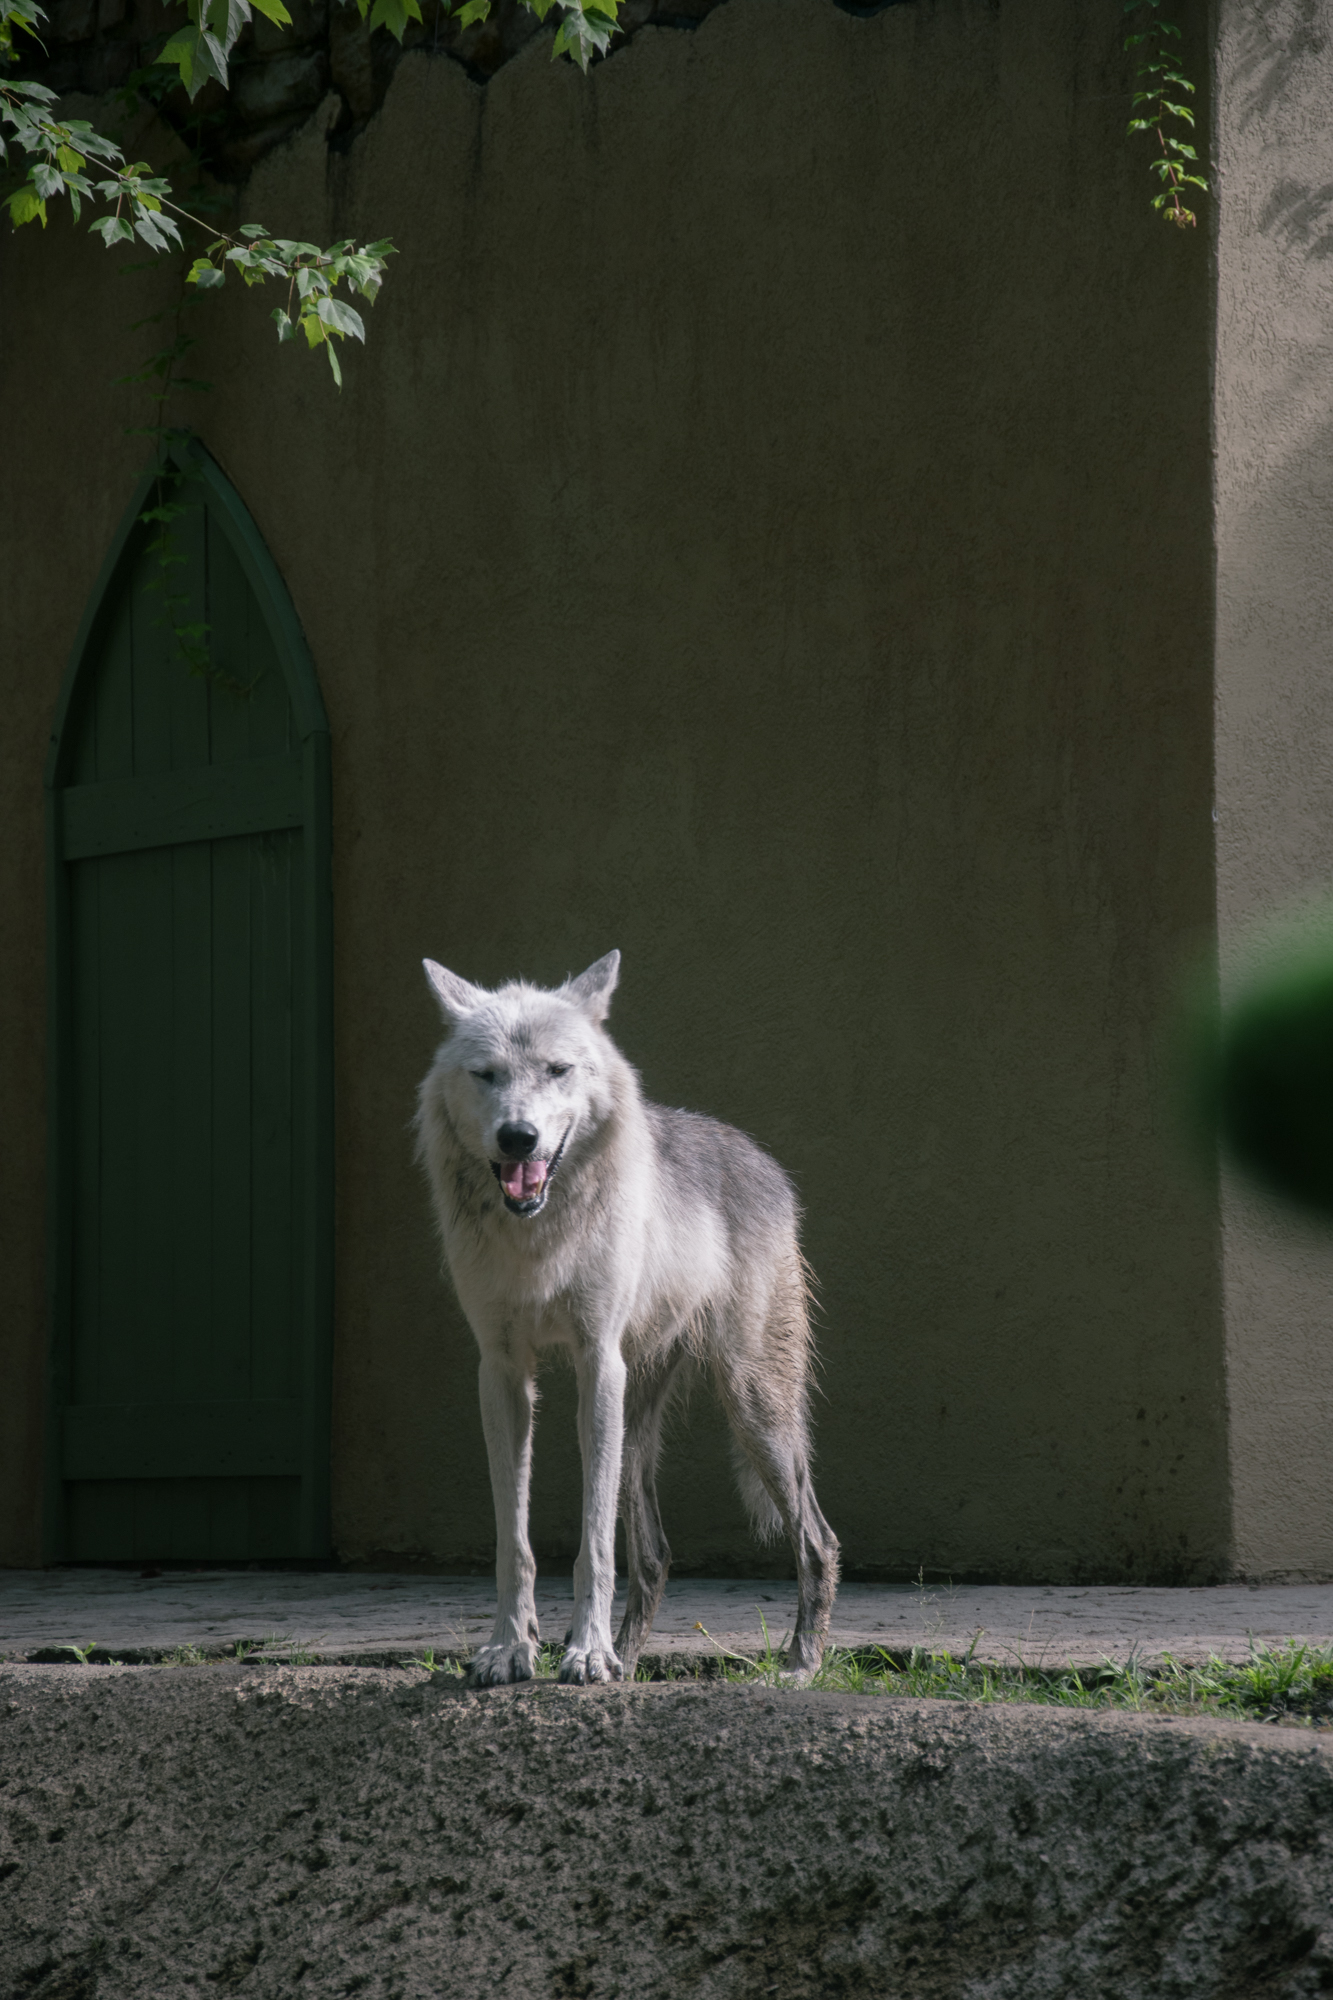 majestic beast. my first time seeing the wolves after many times walking past their crib and calling for them.